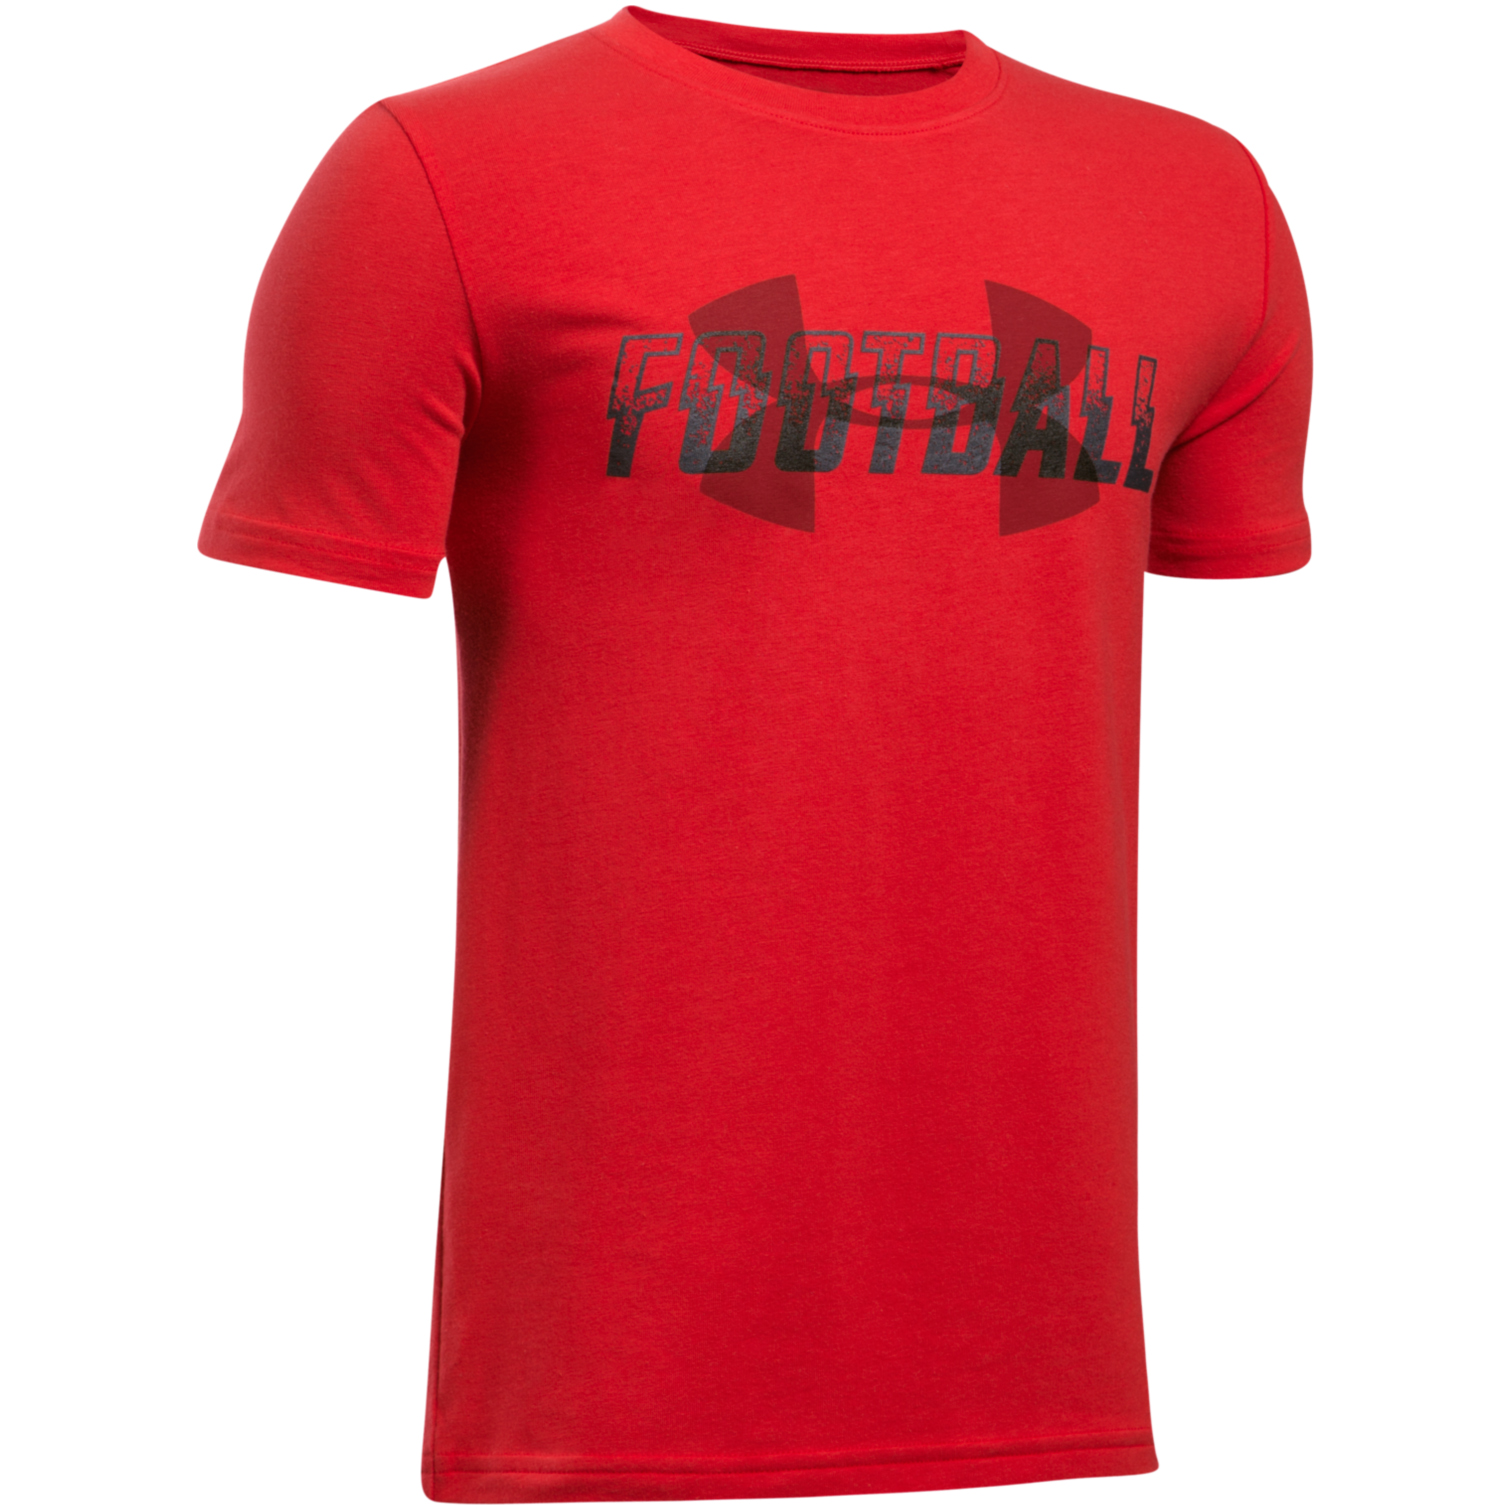 Under Armour Boys' Football Overlay Short Sleeve T-shirt